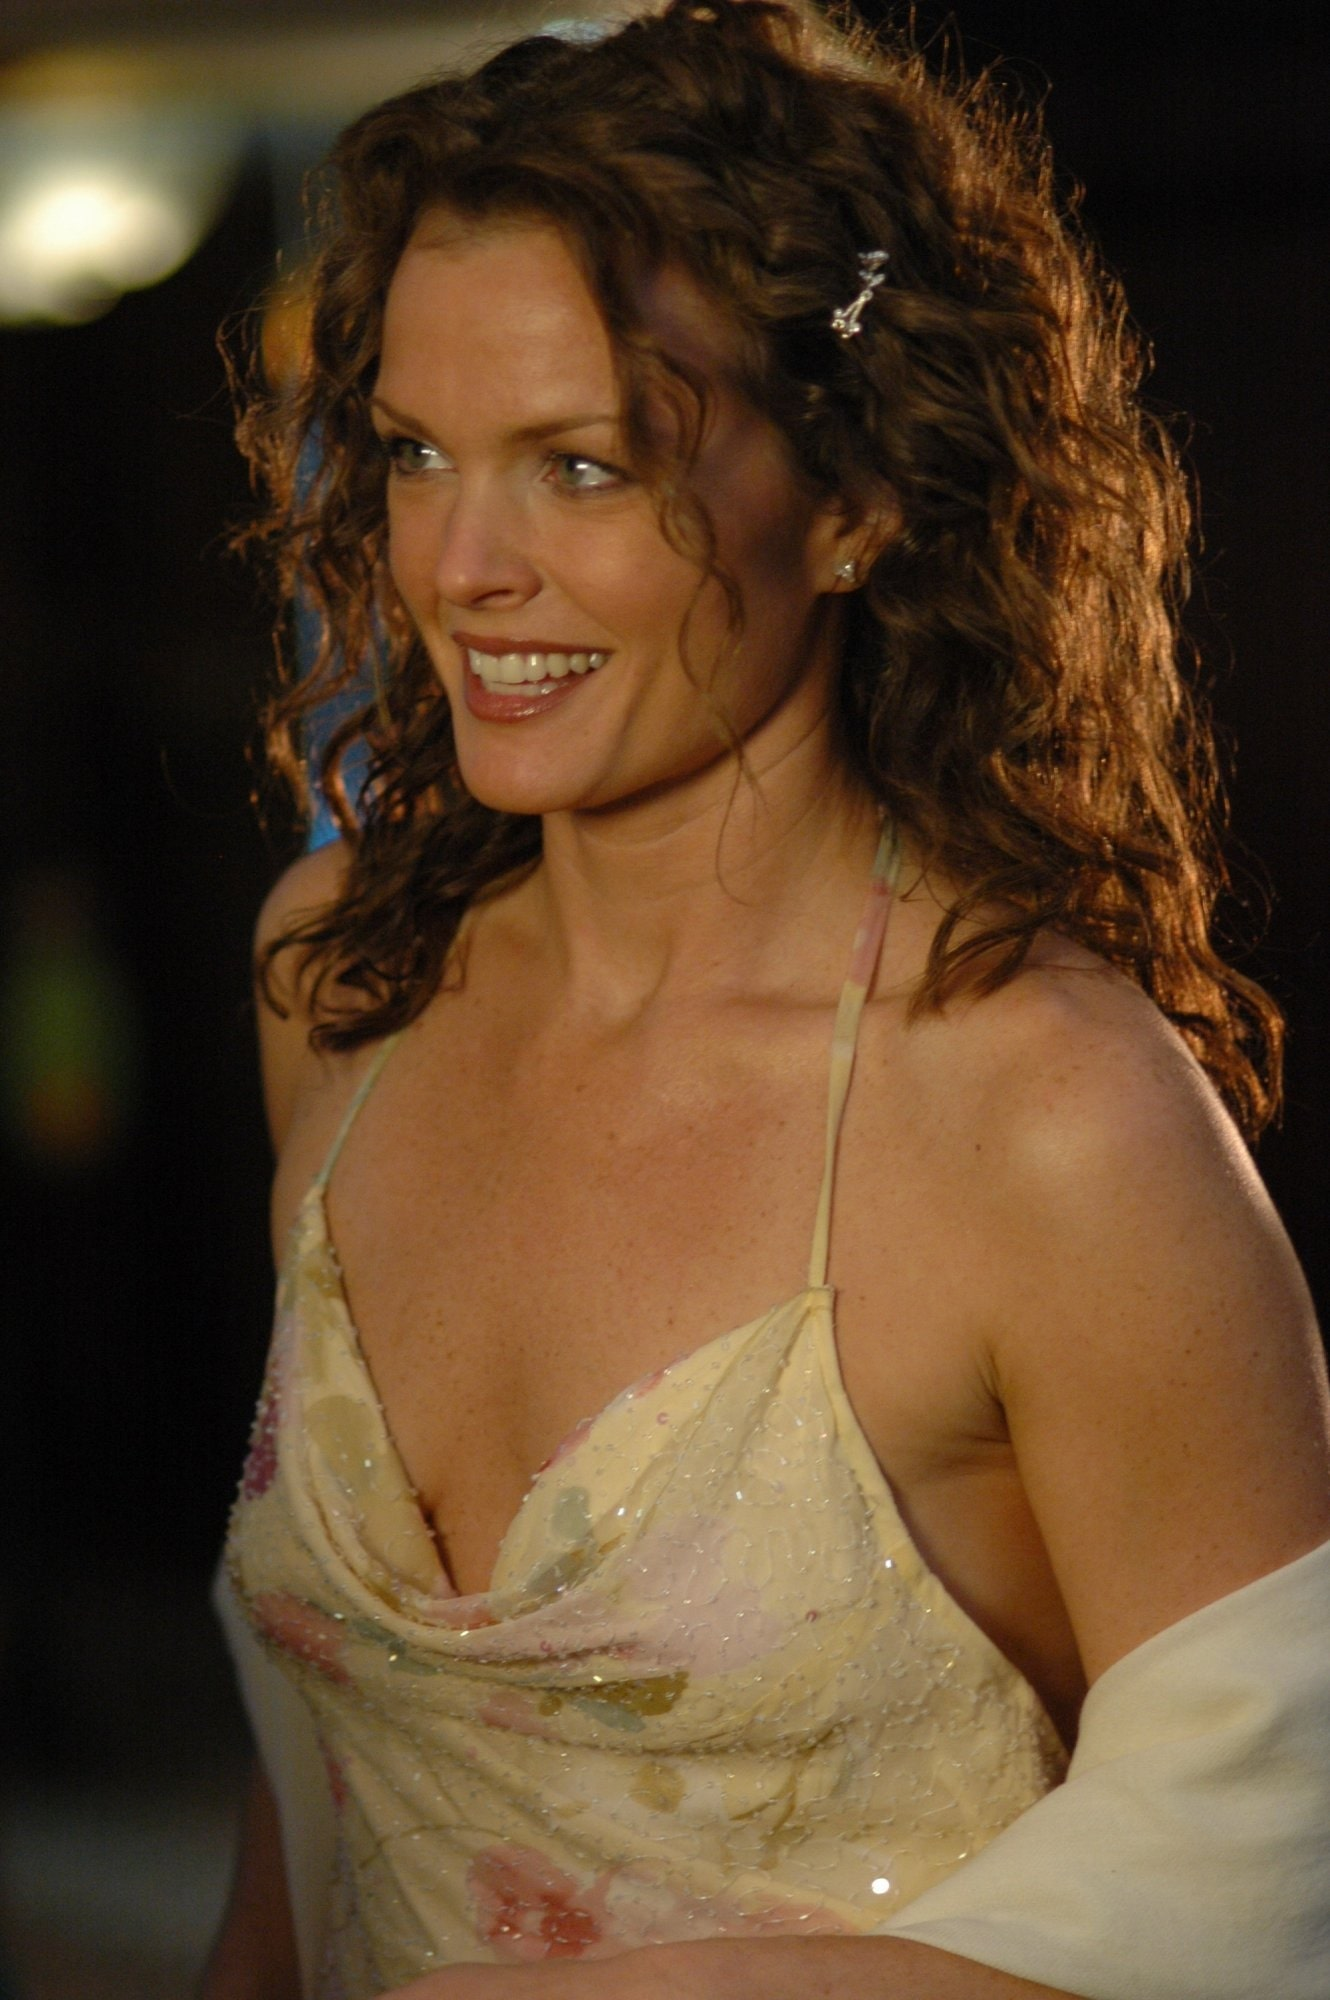 Dina meyer hot images xx — photo 8